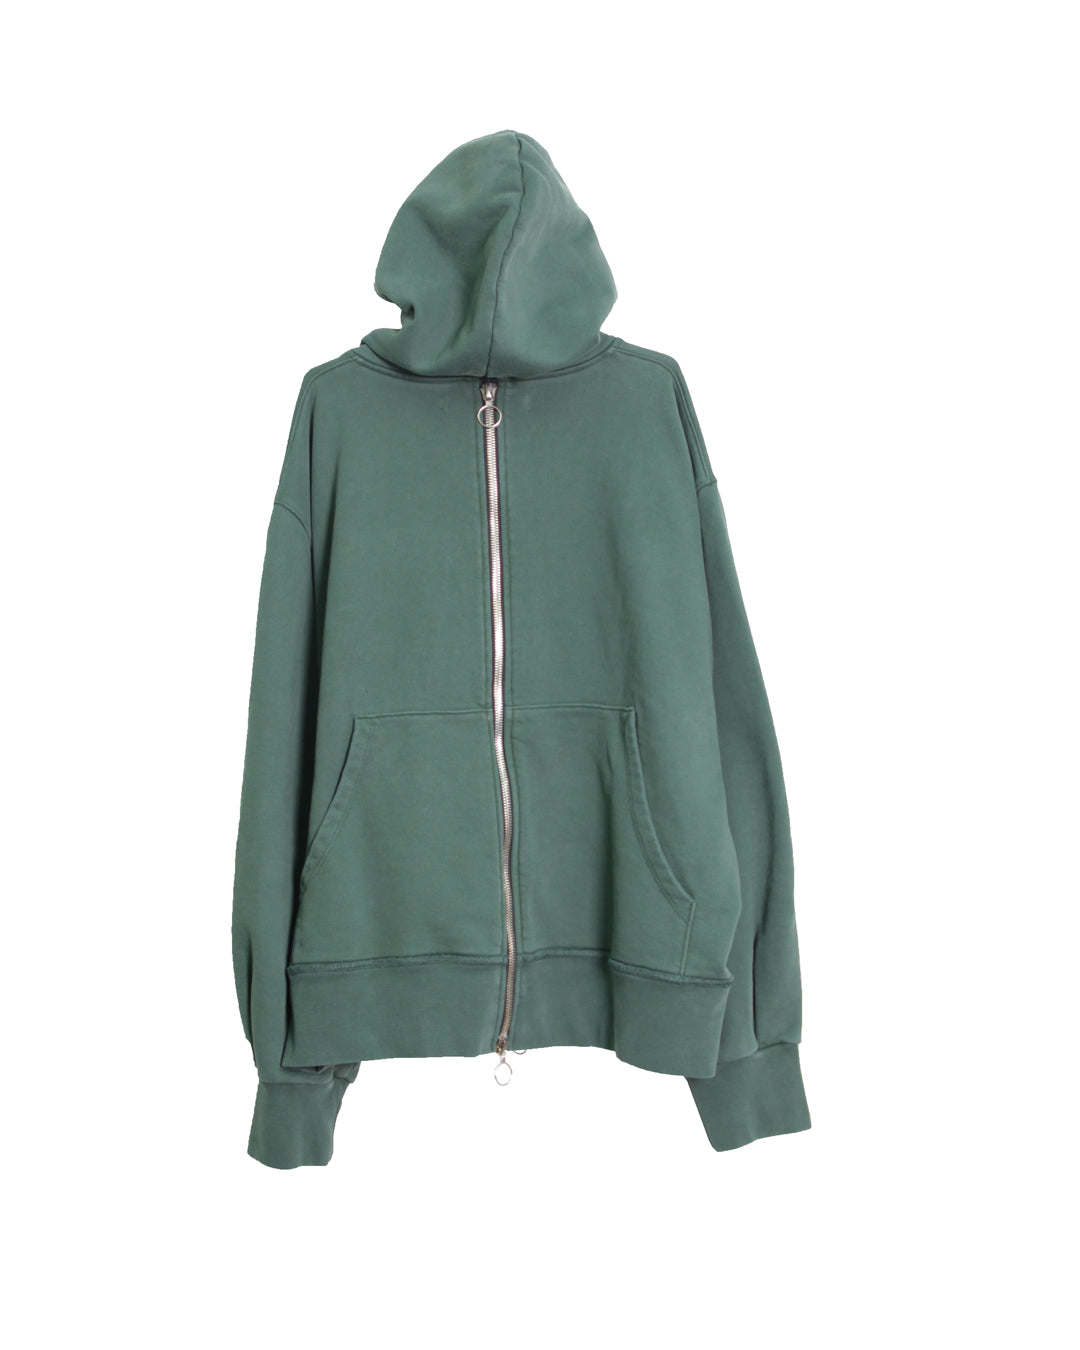 zipped hooded sweatshirt - Green Mr. Completely Cheap Sale For Cheap Buy Cheap Manchester oDP7J0M